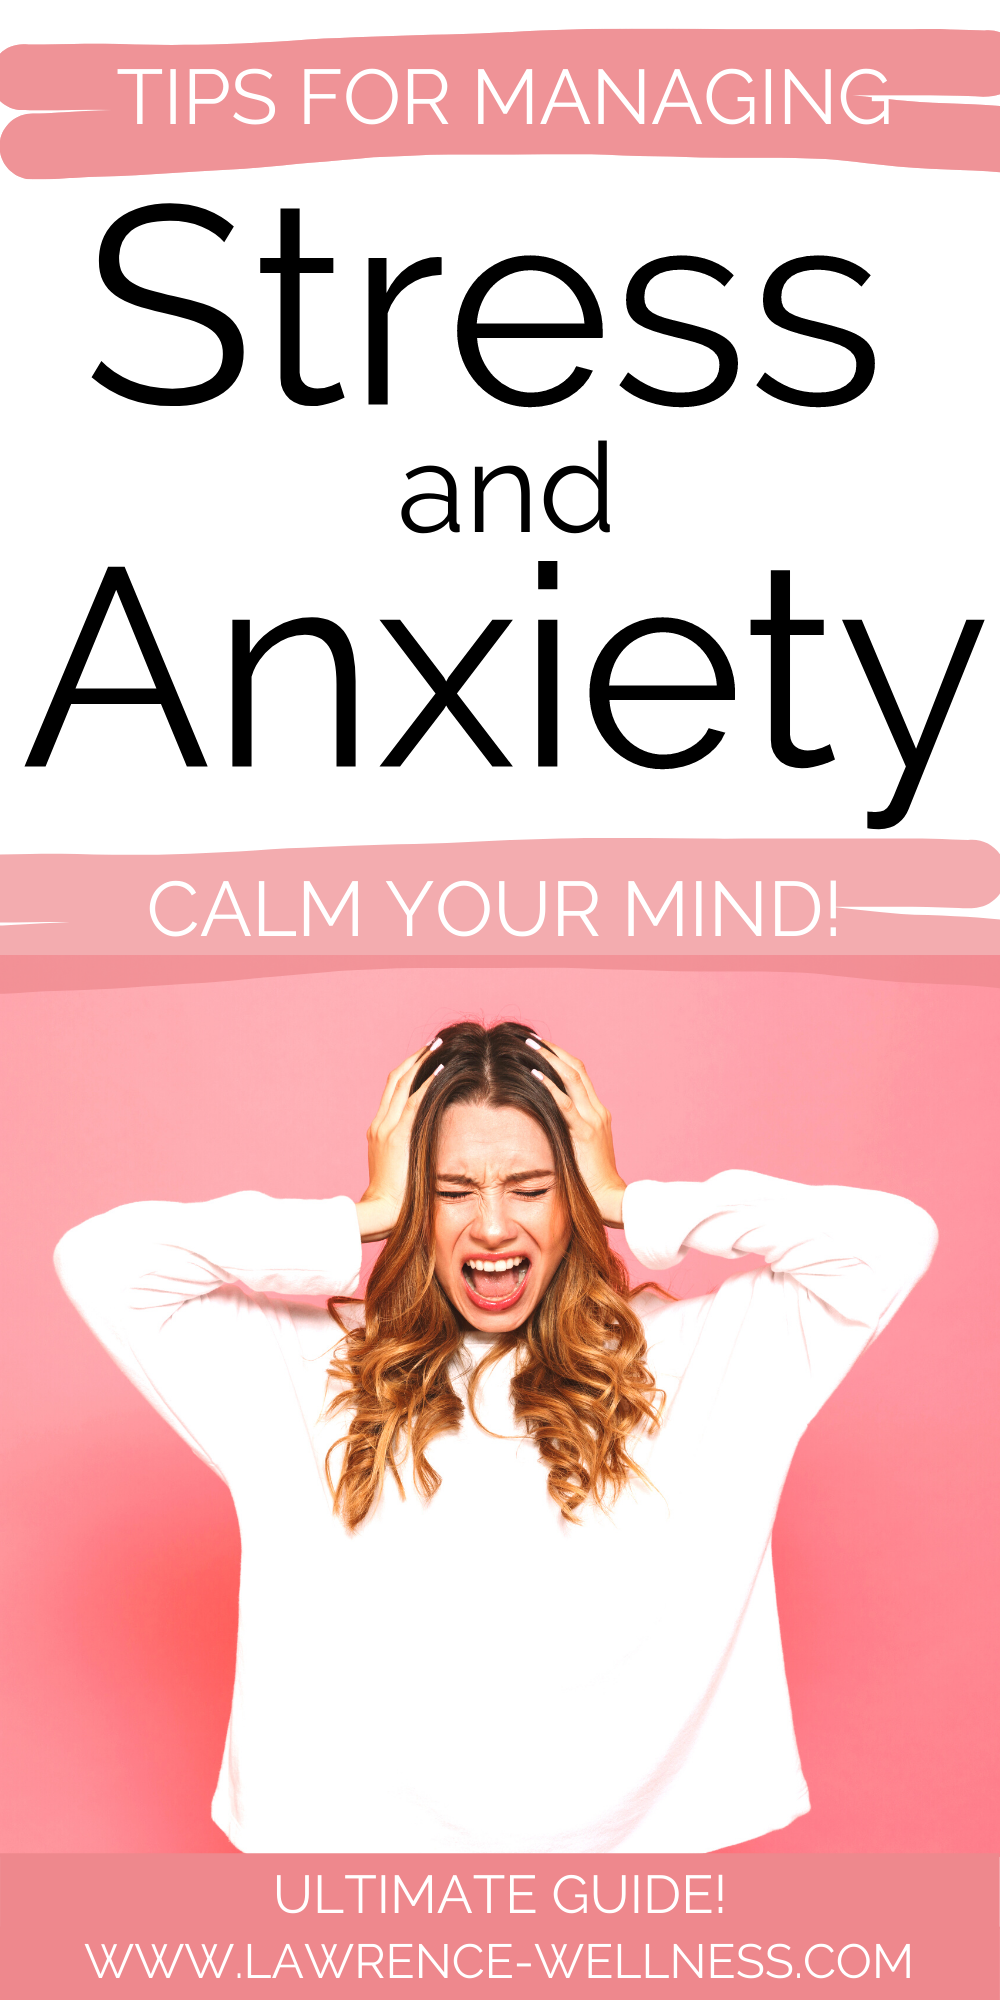 Tips-for-Managing-Stress-and-Anxiety